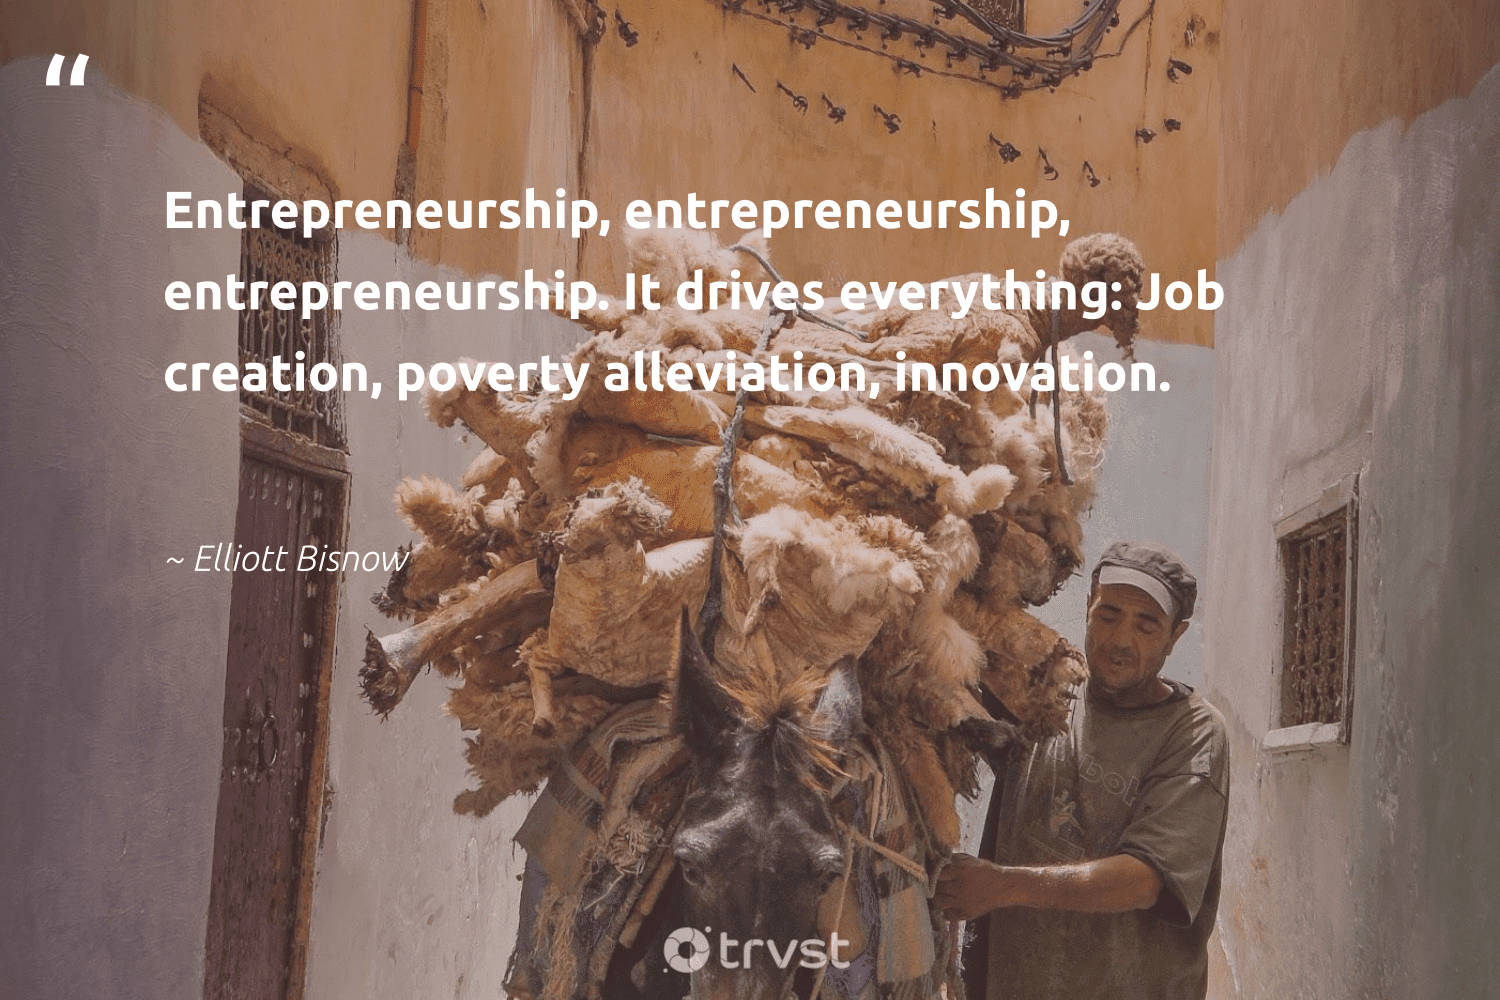 """""""Entrepreneurship, entrepreneurship, entrepreneurship. It drives everything: Job creation, poverty alleviation, innovation.""""  - Elliott Bisnow #trvst #quotes #poverty #entrepreneurship #endpoverty #equalopportunity #inclusion #dotherightthing #makeadifference #equalrights #bethechange #weareallone"""